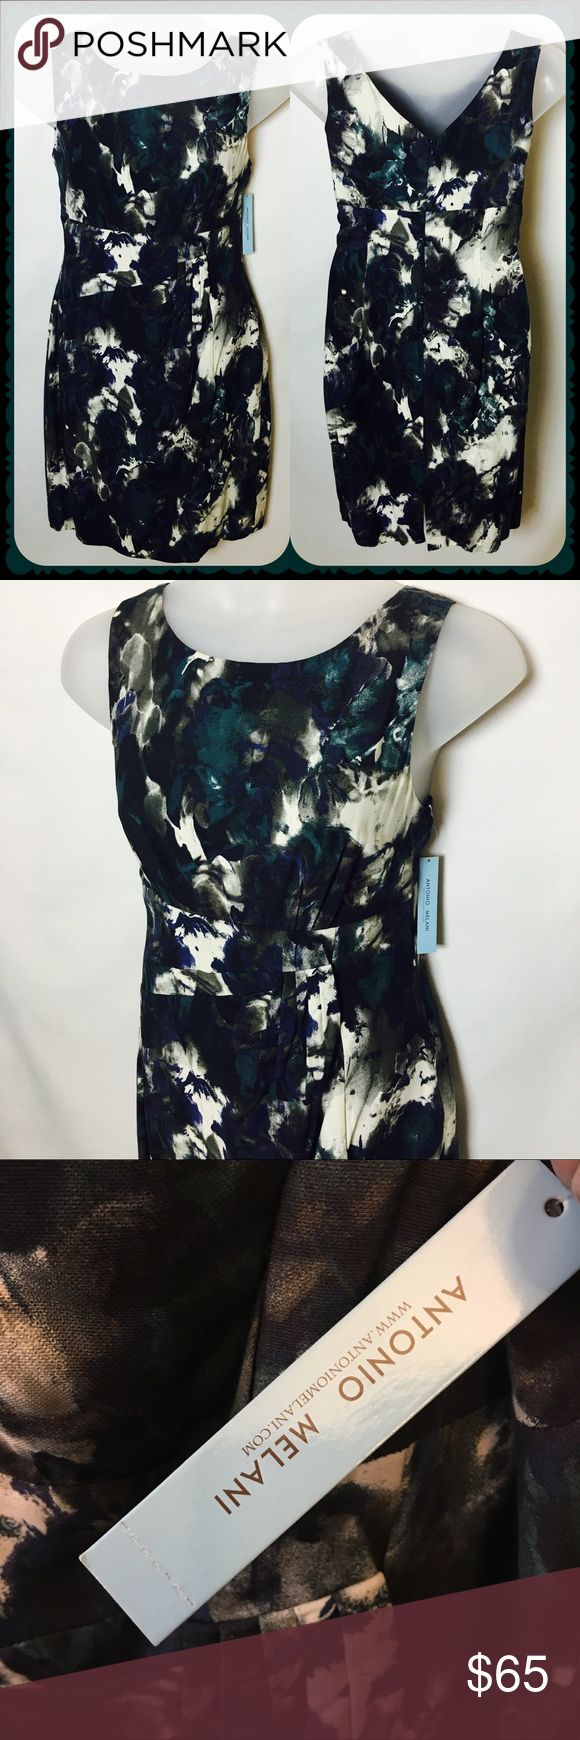 NWT Antonio Melani Raquel Fall Roses Dress Size 14 Gorgeous Antonio Melani fall roses Raquel dress in teal Brand-new Size 14 Bust measures 38 inches Waist measures 36 inches Length measures 38 inches ANTONIO MELANI Dresses